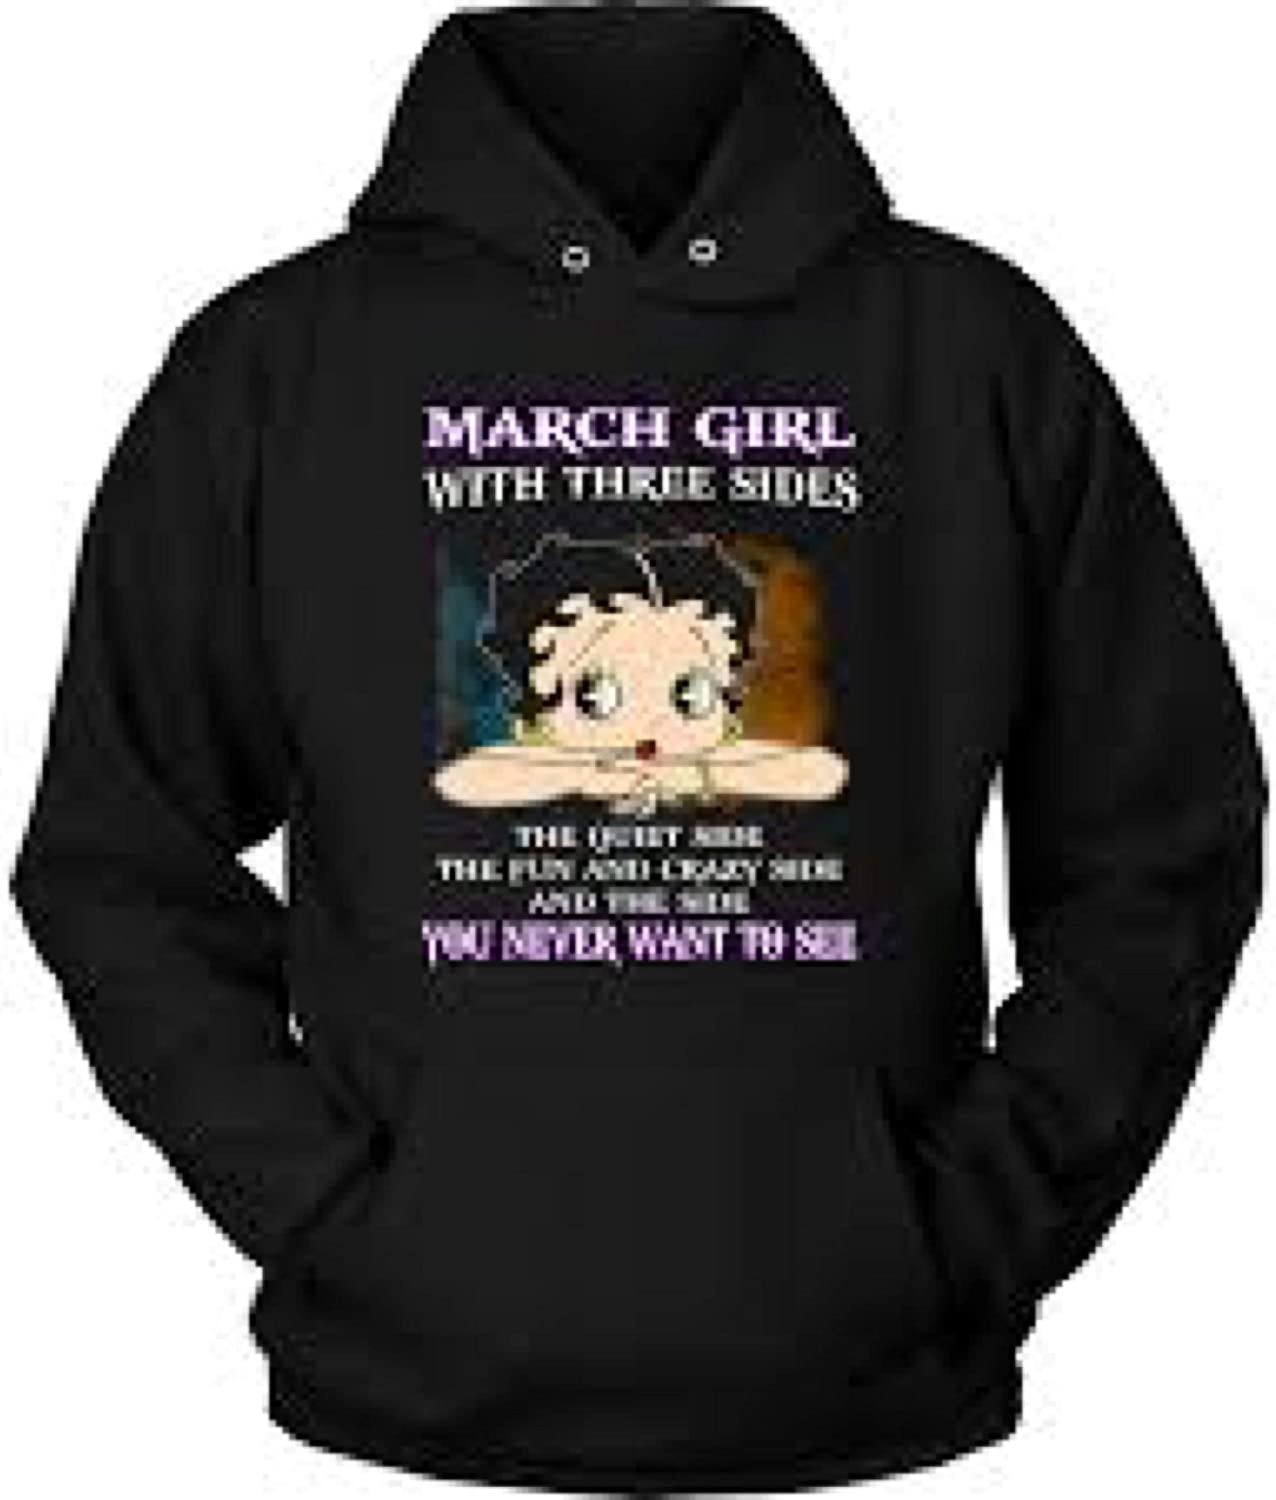 Unisex Hoodie Multicolored 10aa PapCell March Girl with Three Sides Shirt The Quiet The Fun and Crazy Side Tshirt